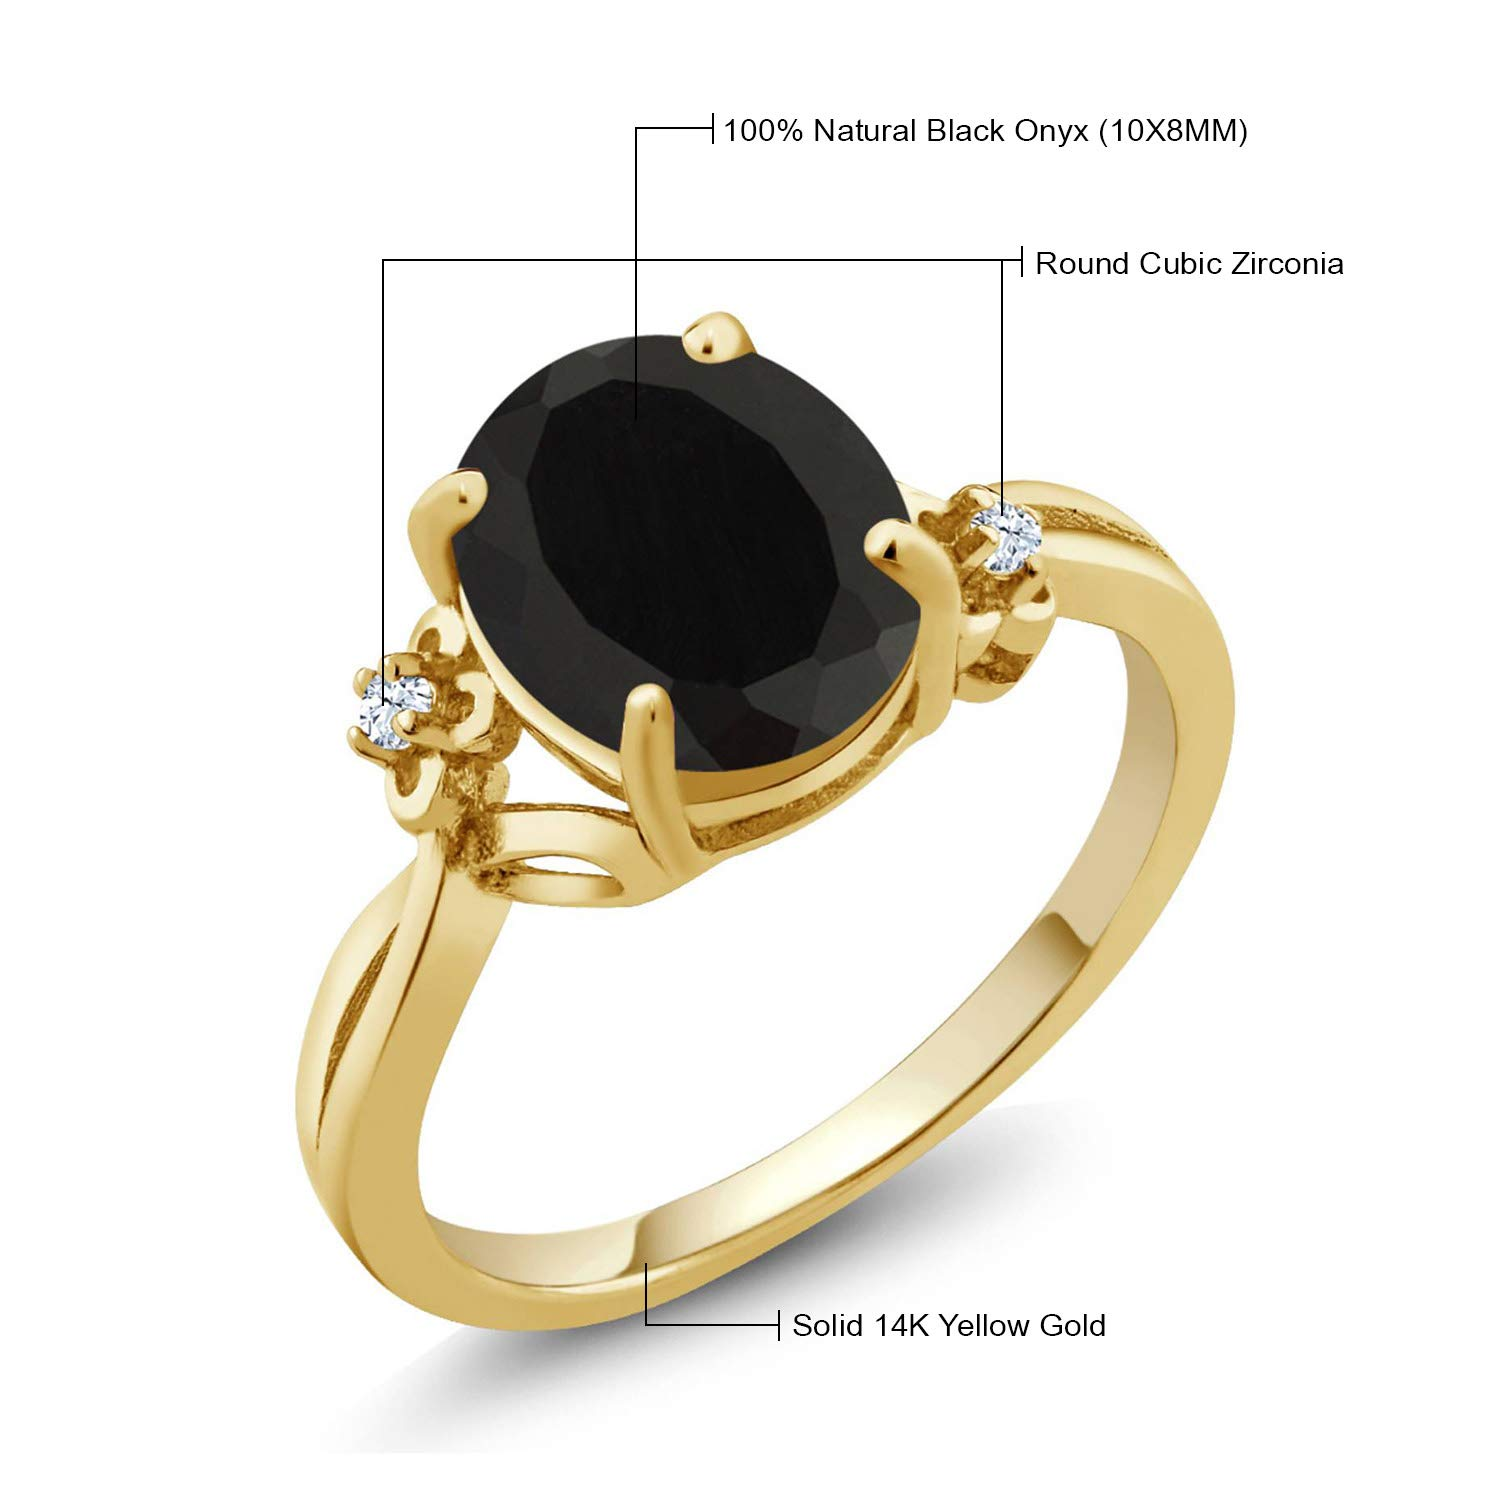 0791458255897 Gem Stone King 14K Yellow Gold Black Onyx Women's Ring (2.23 cttw Oval  Available 5,6,7,8,9)